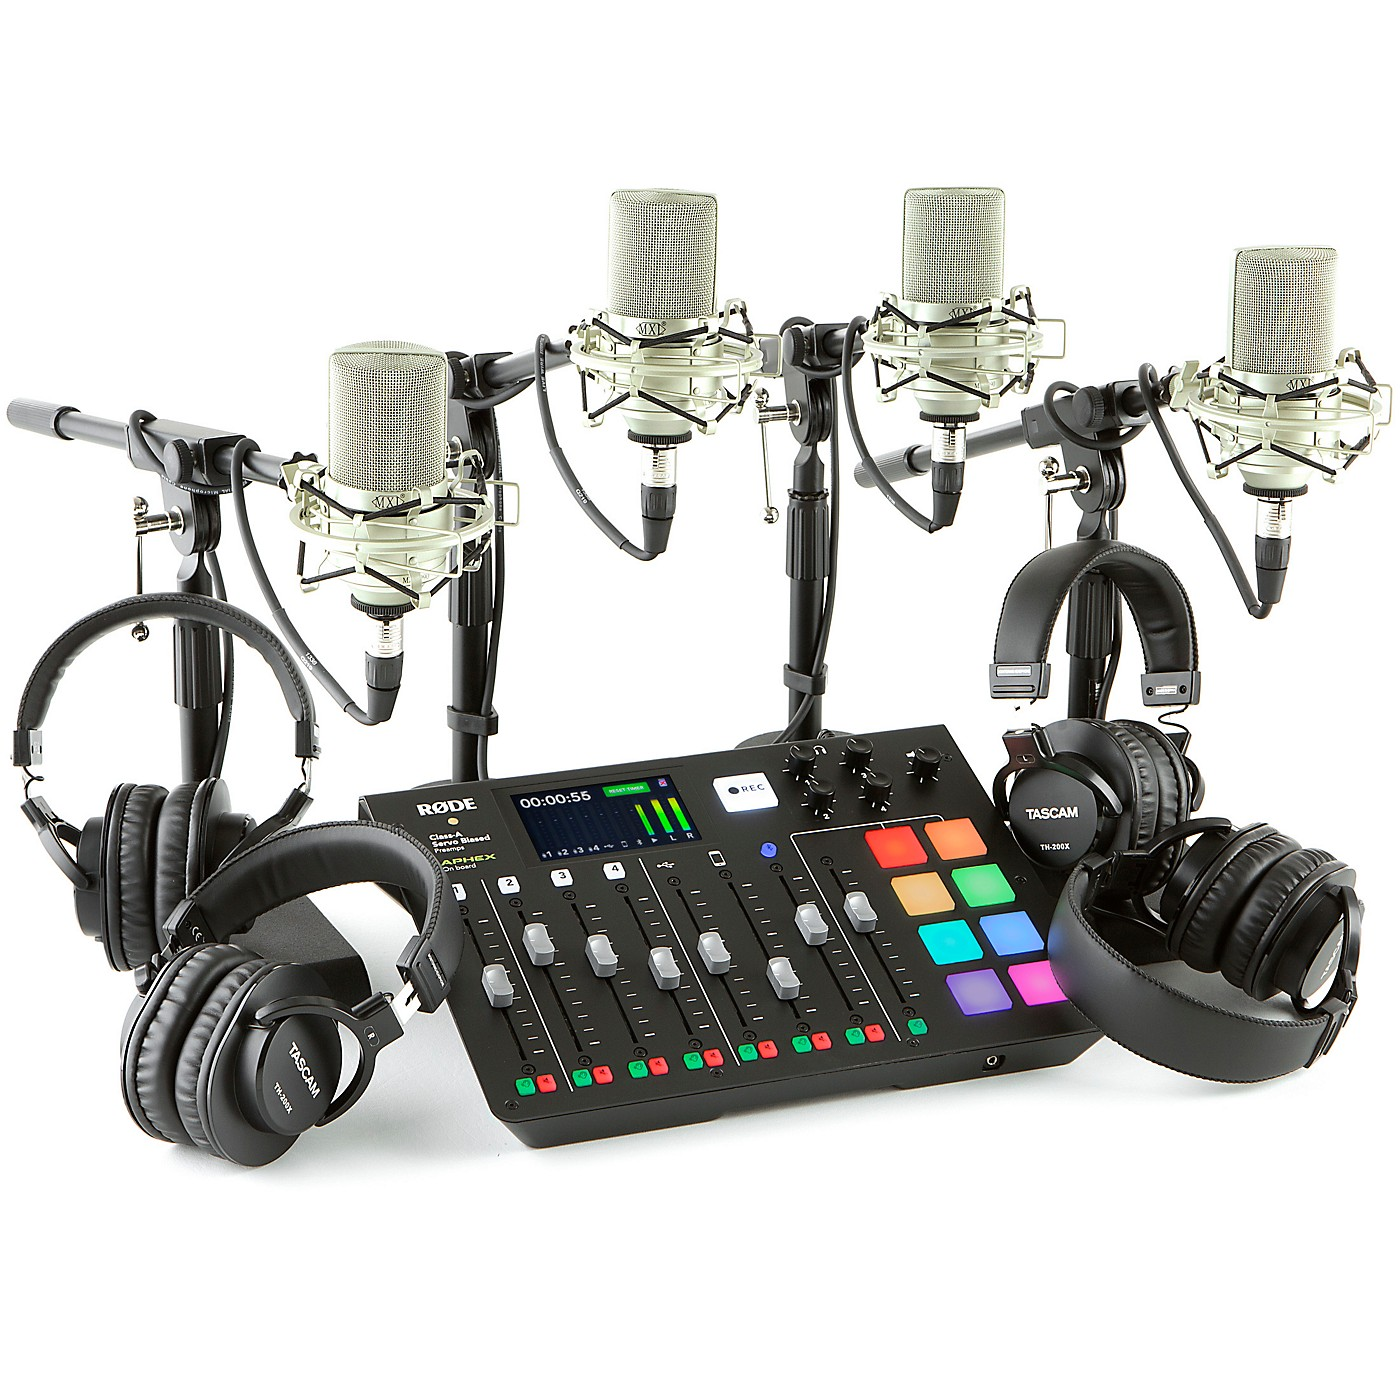 Rode Rodecaster Pro 4-Person Podcasting Bundle With MXL990 & TH200X thumbnail